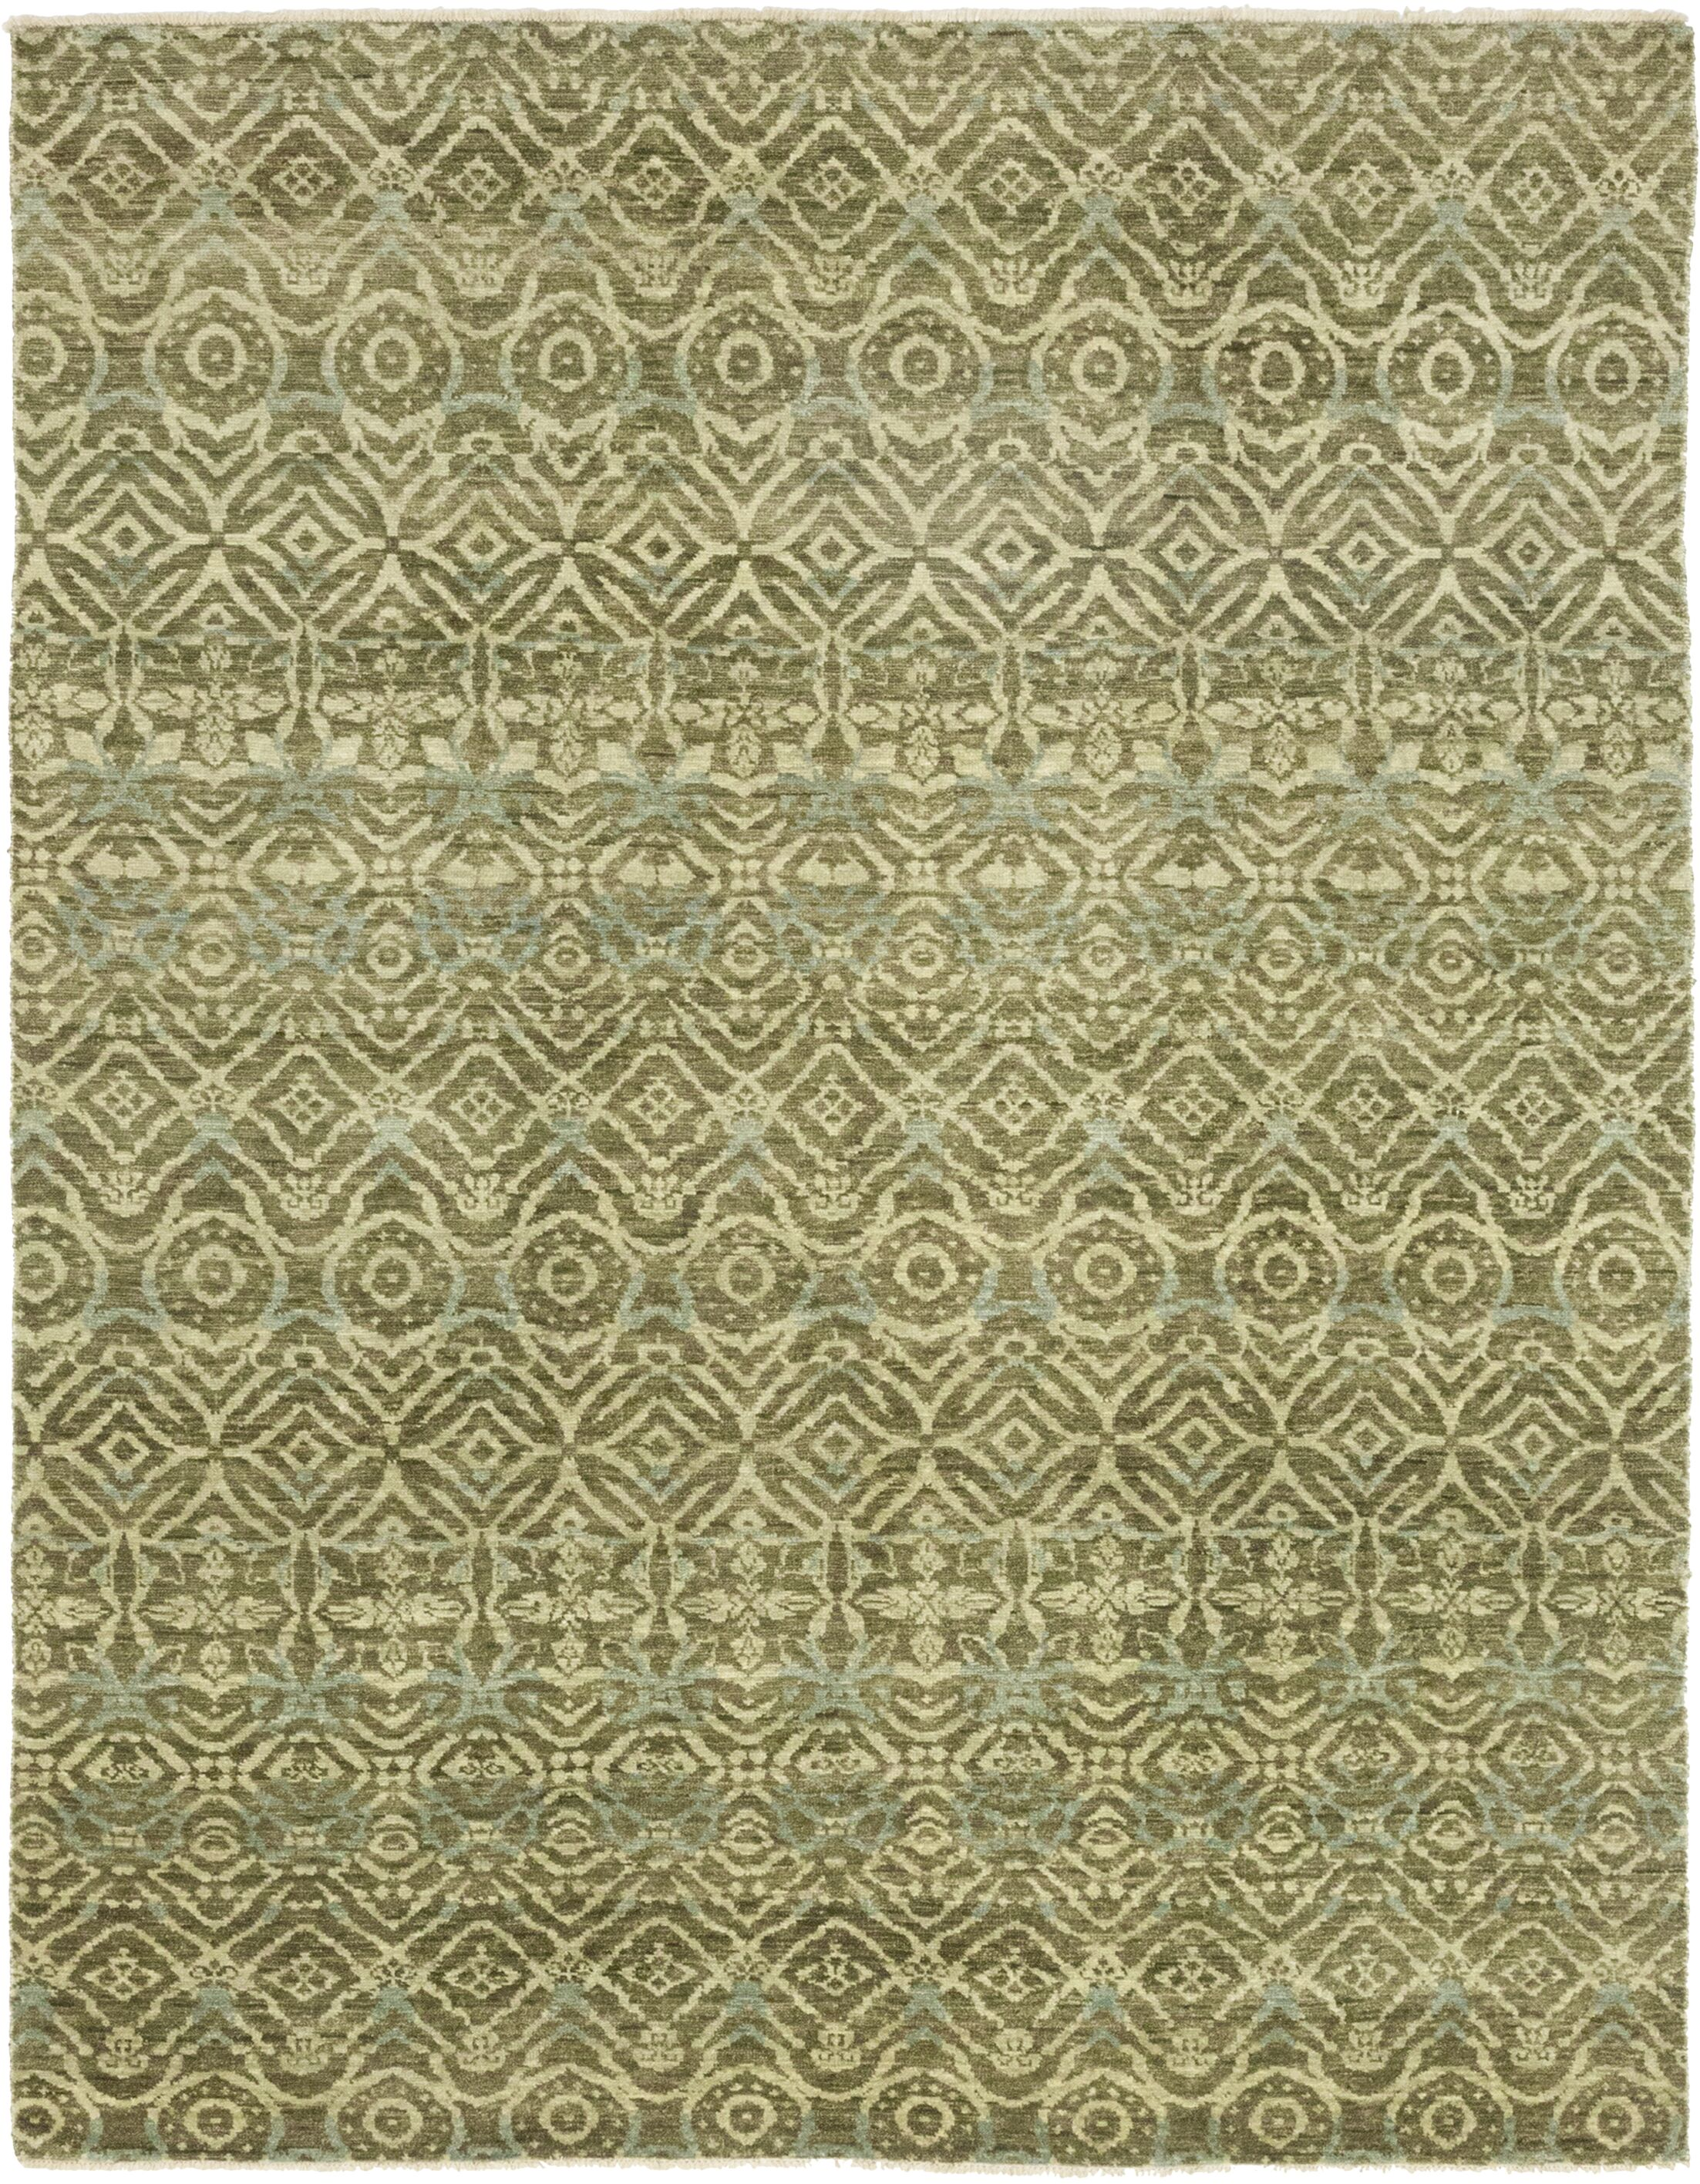 One-of-a-Kind Meleedy Hand-Knotted Wool Green Indoor Area Rug